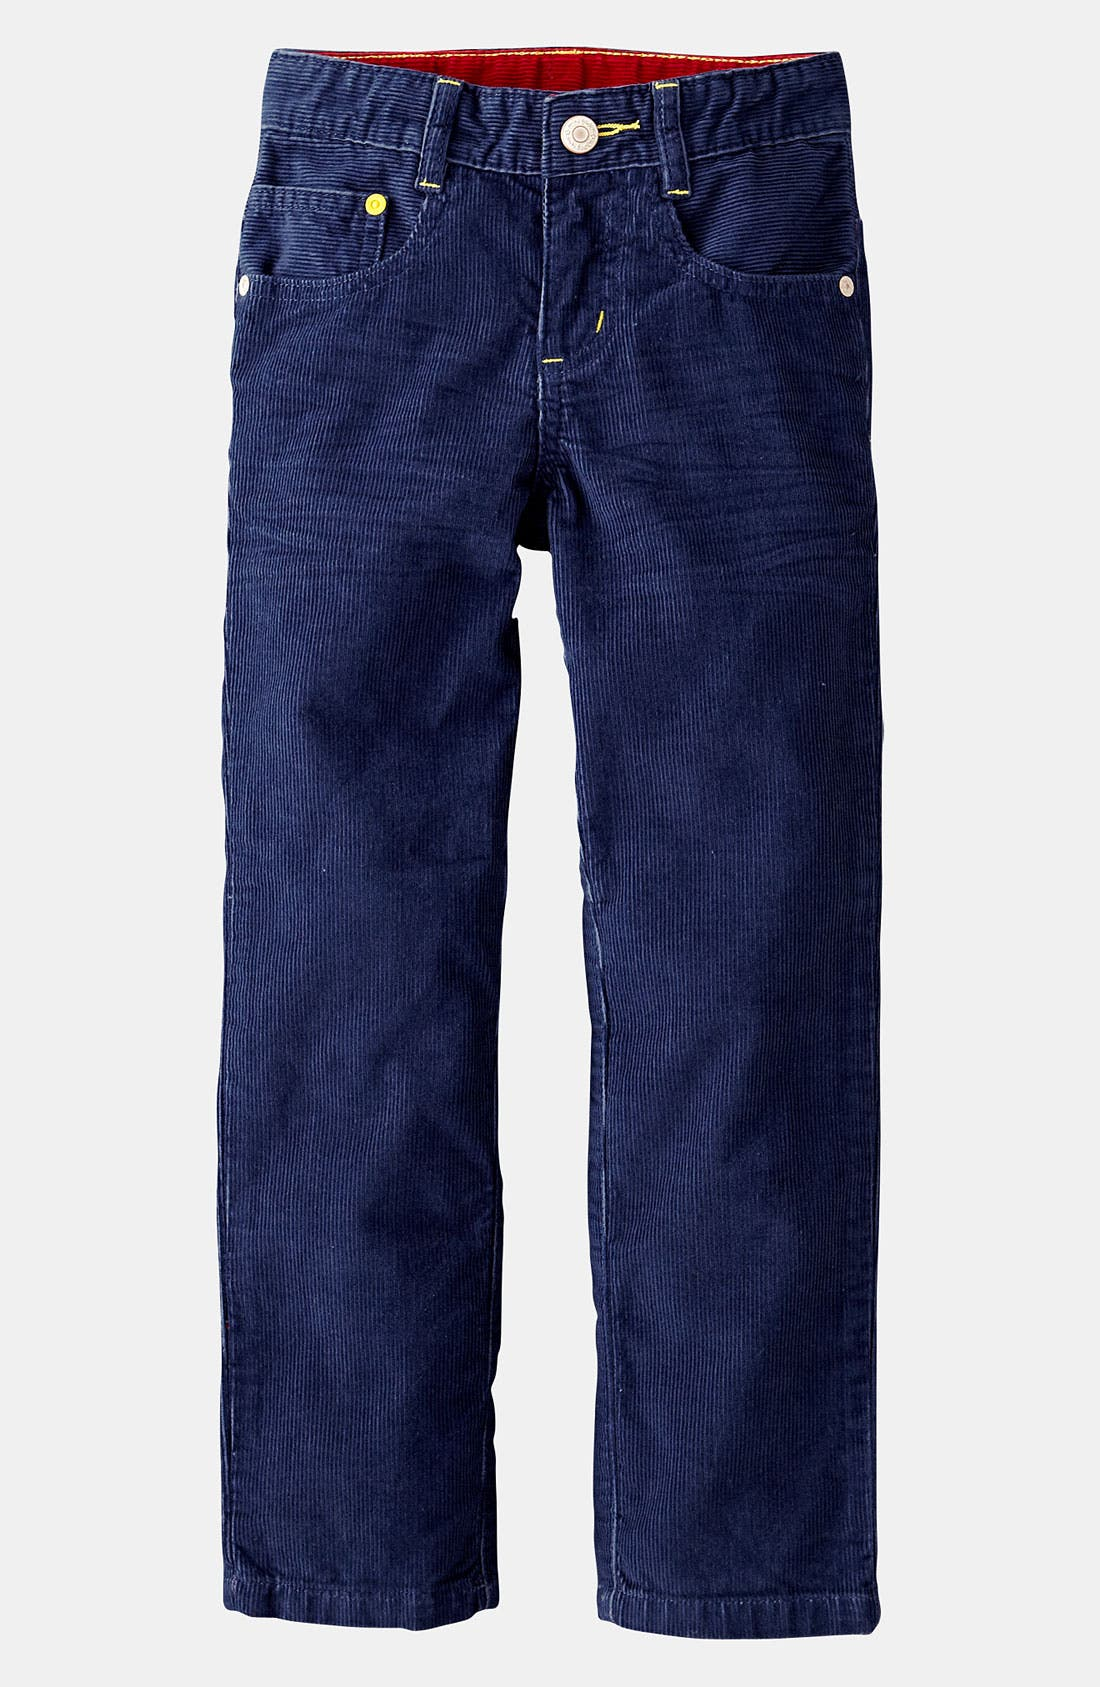 'Preppy' Slim Corduroy Pants,                             Main thumbnail 1, color,                             400